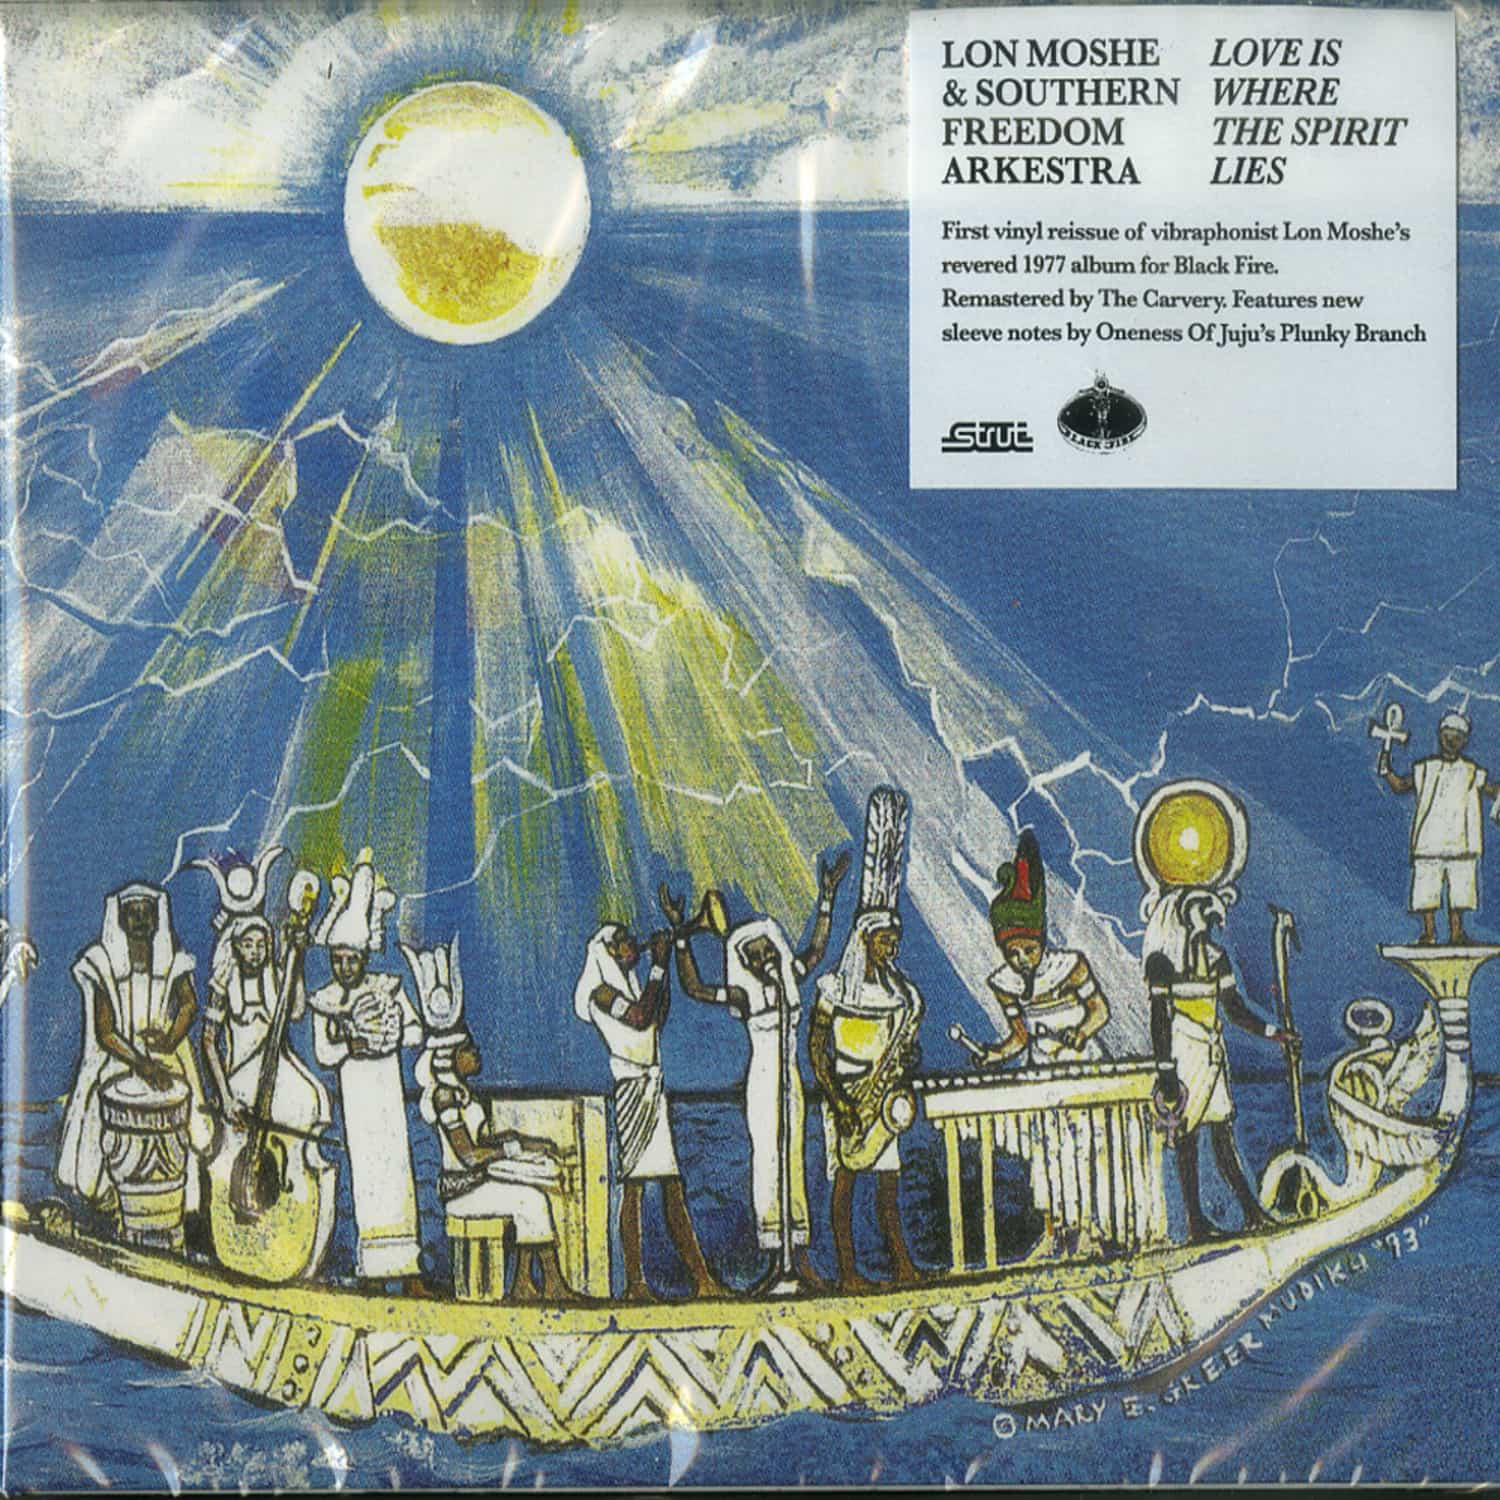 Lon Moshe & Southern Freedom Arkestra - LOVE IS WHERE THE SPIRIT LIES